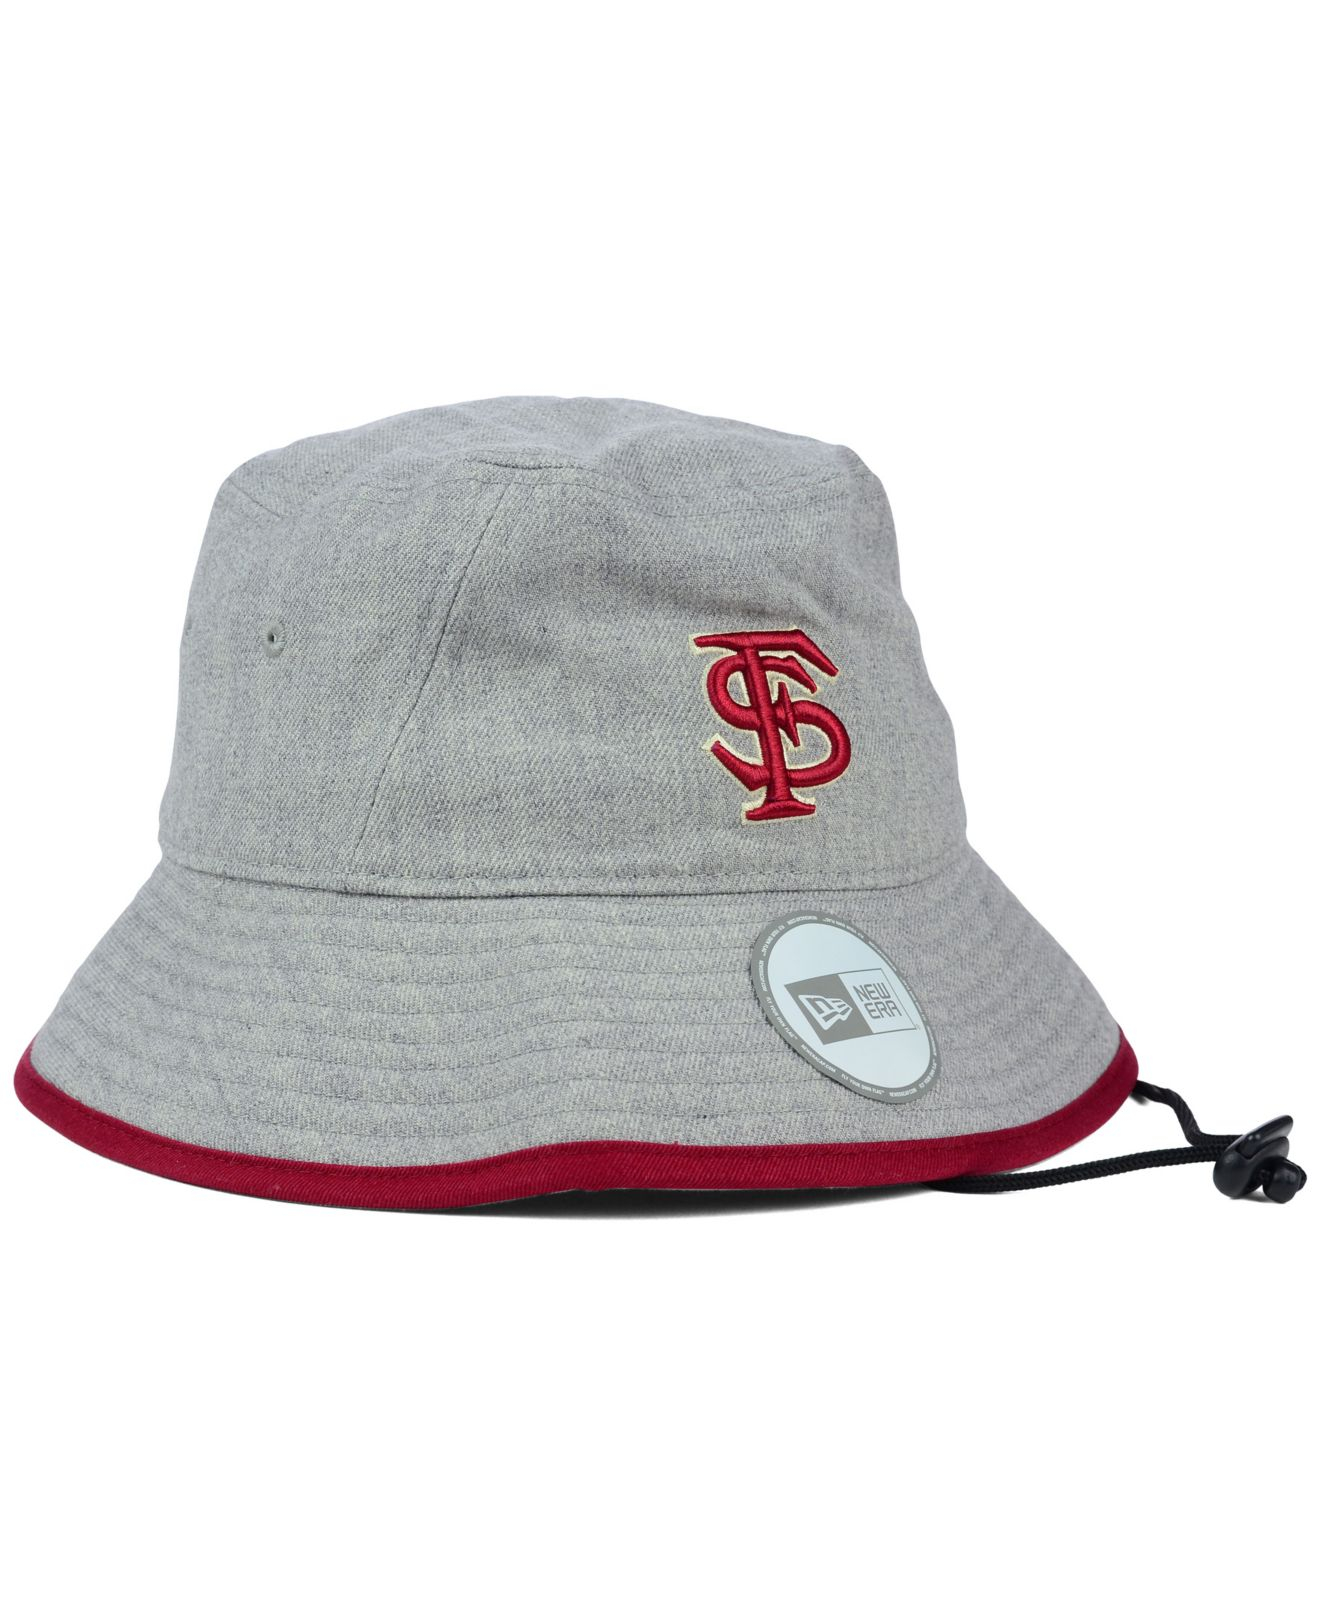 a3364a0a2af Lyst - KTZ Florida State Seminoles Tip Bucket Hat in Gray